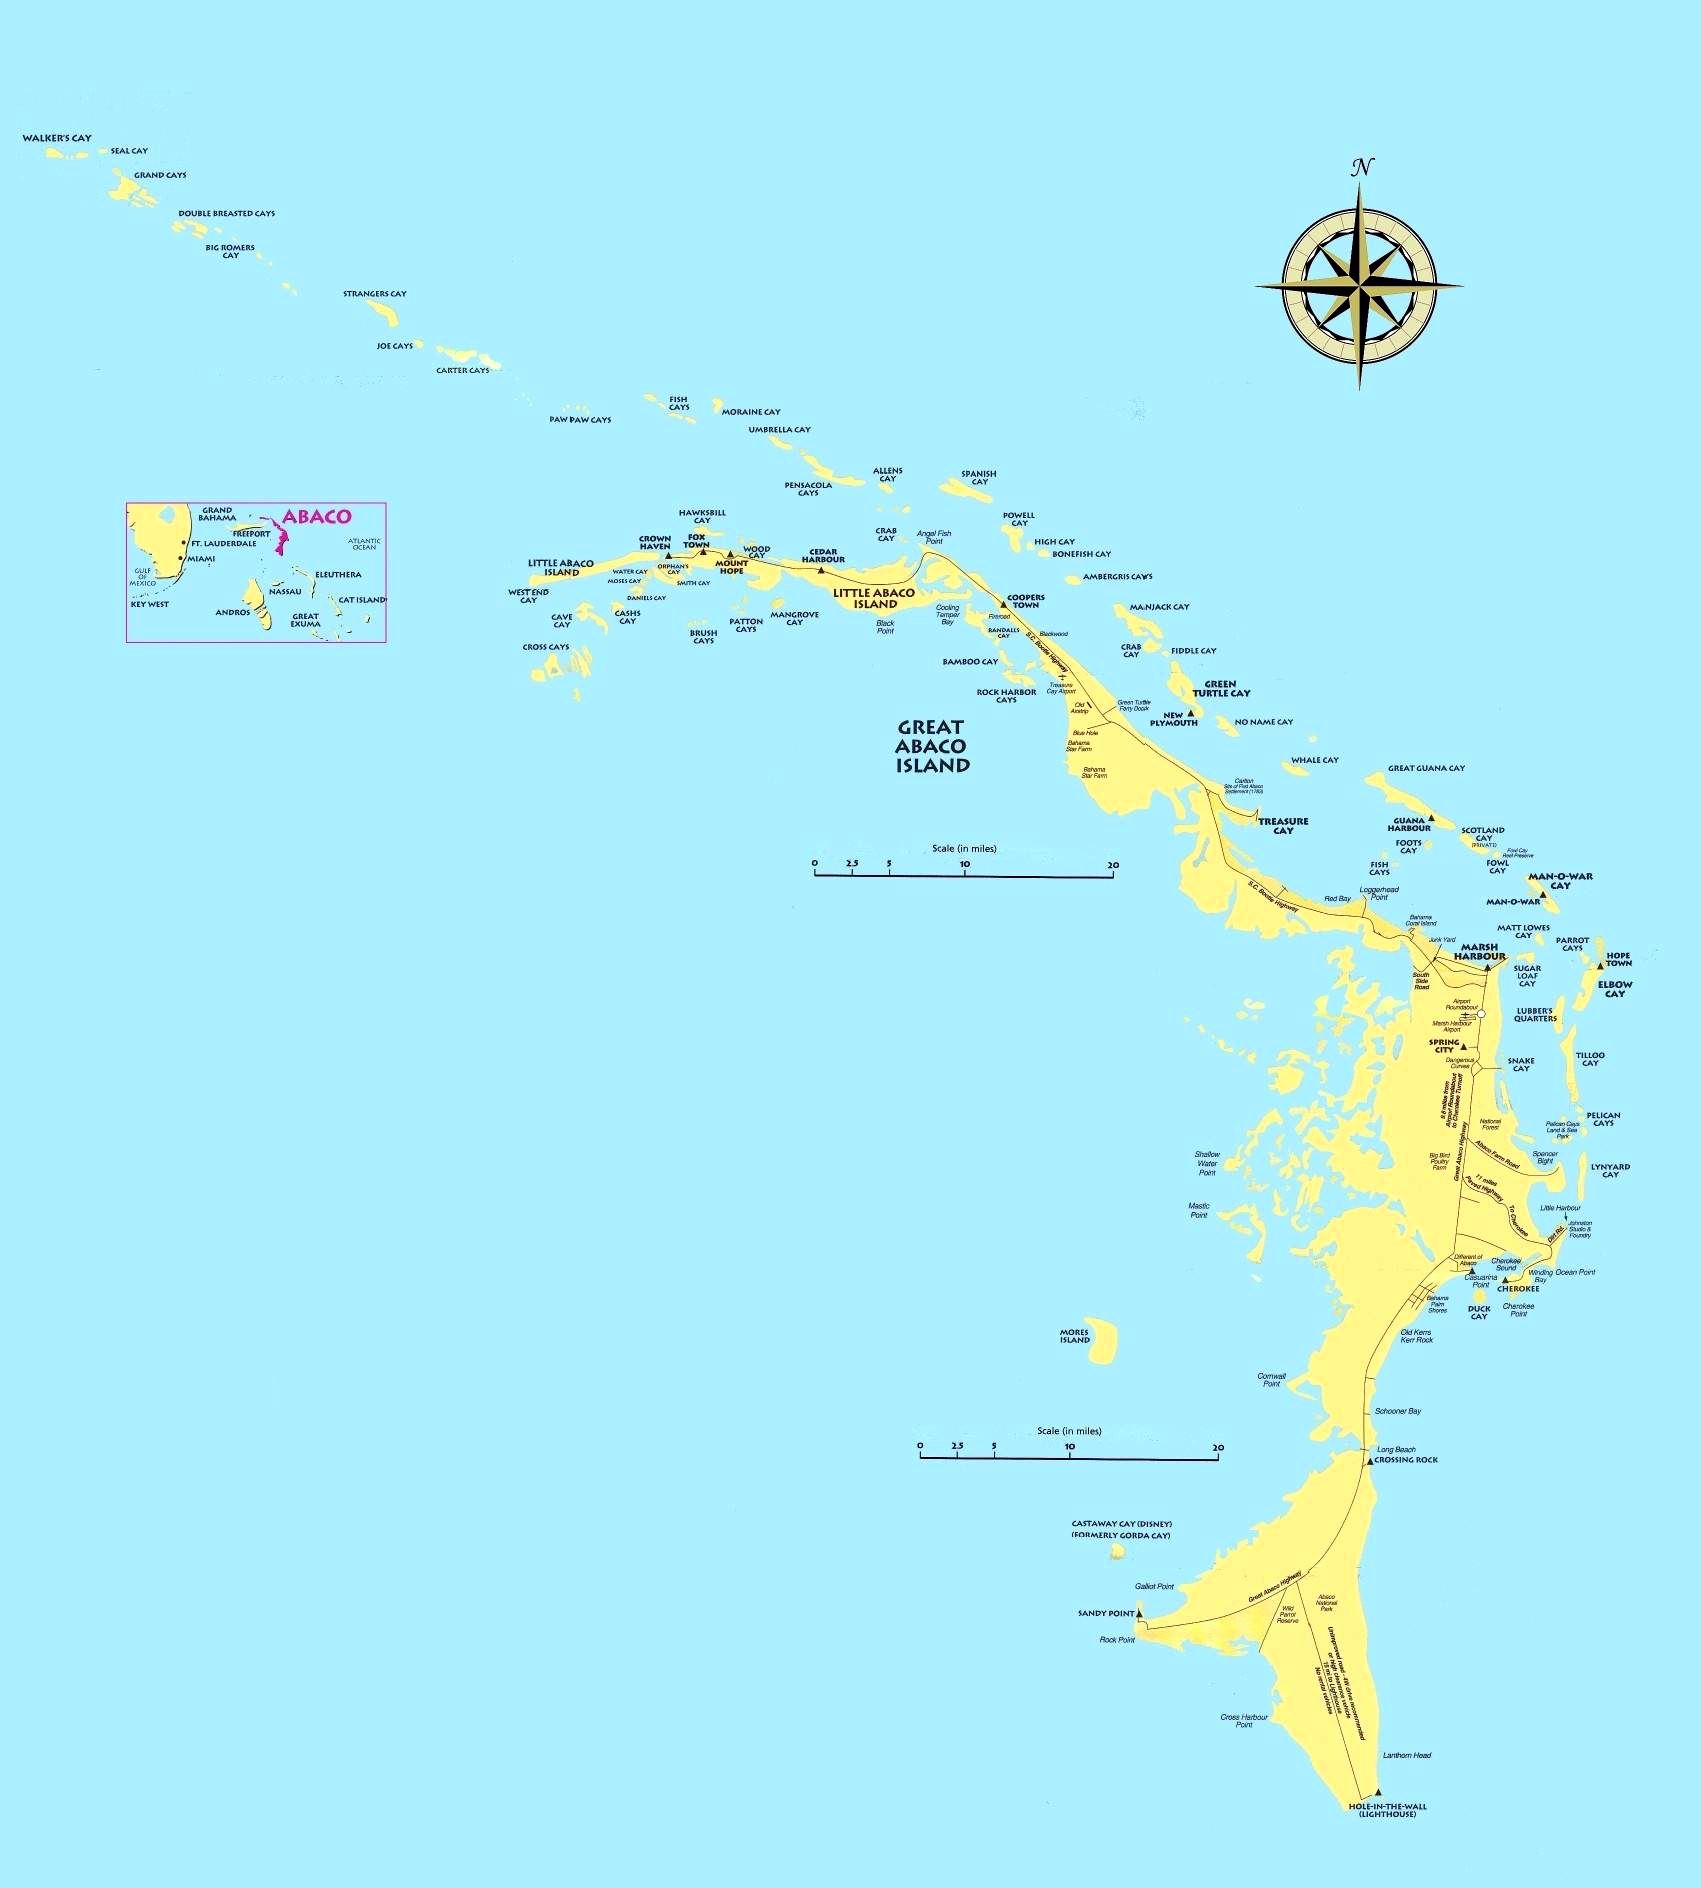 Large Abaco Maps For Free Download And Print   High-Resolution And - Map Of Florida And Freeport Bahamas